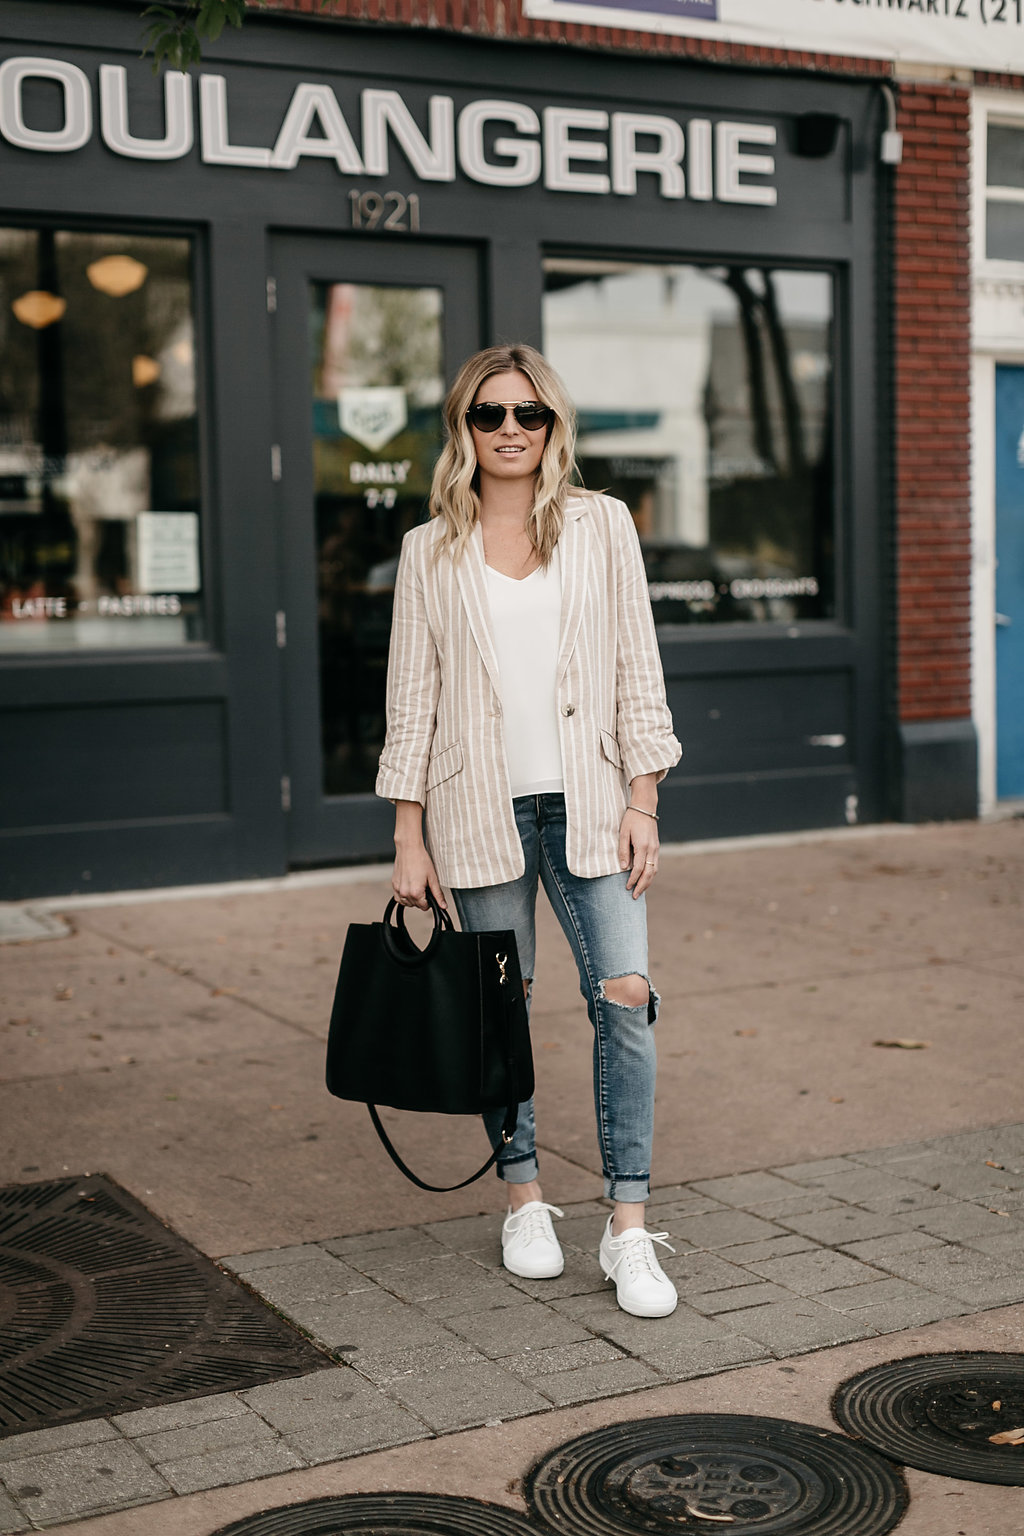 Fitflop shoes paired with trendy blazer and distressed jeans